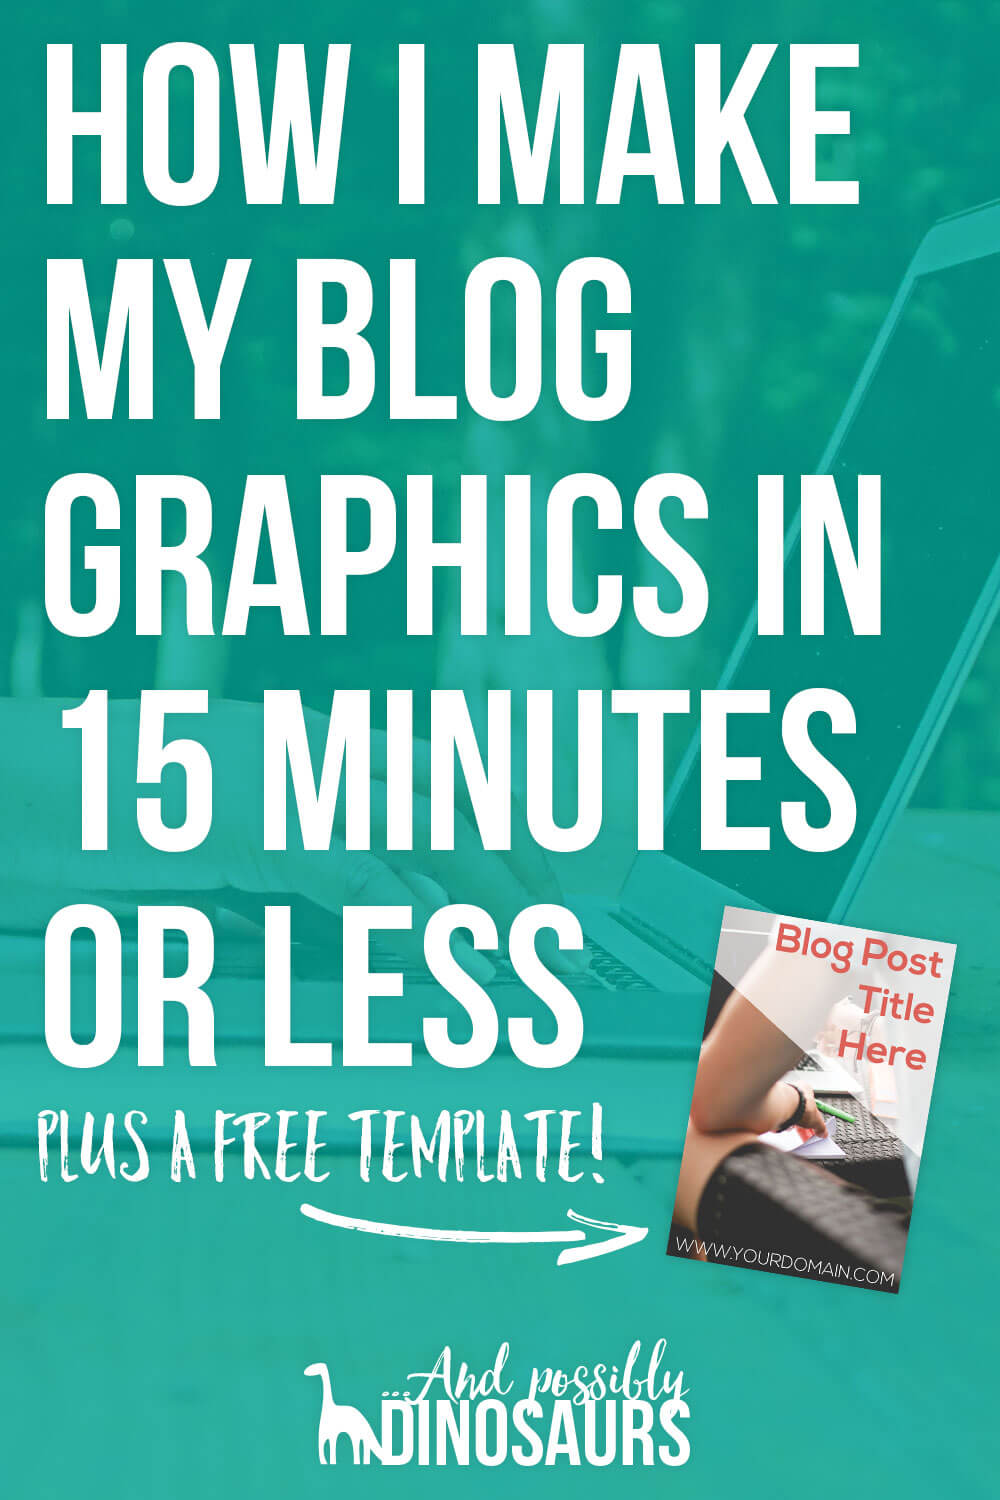 When you're a blogger with a full-time job, your time is valuable. So, how can you blog productively? Design productively! Here's how I make my blog graphics in 15 minutes or less so I can get back to the important things in life.